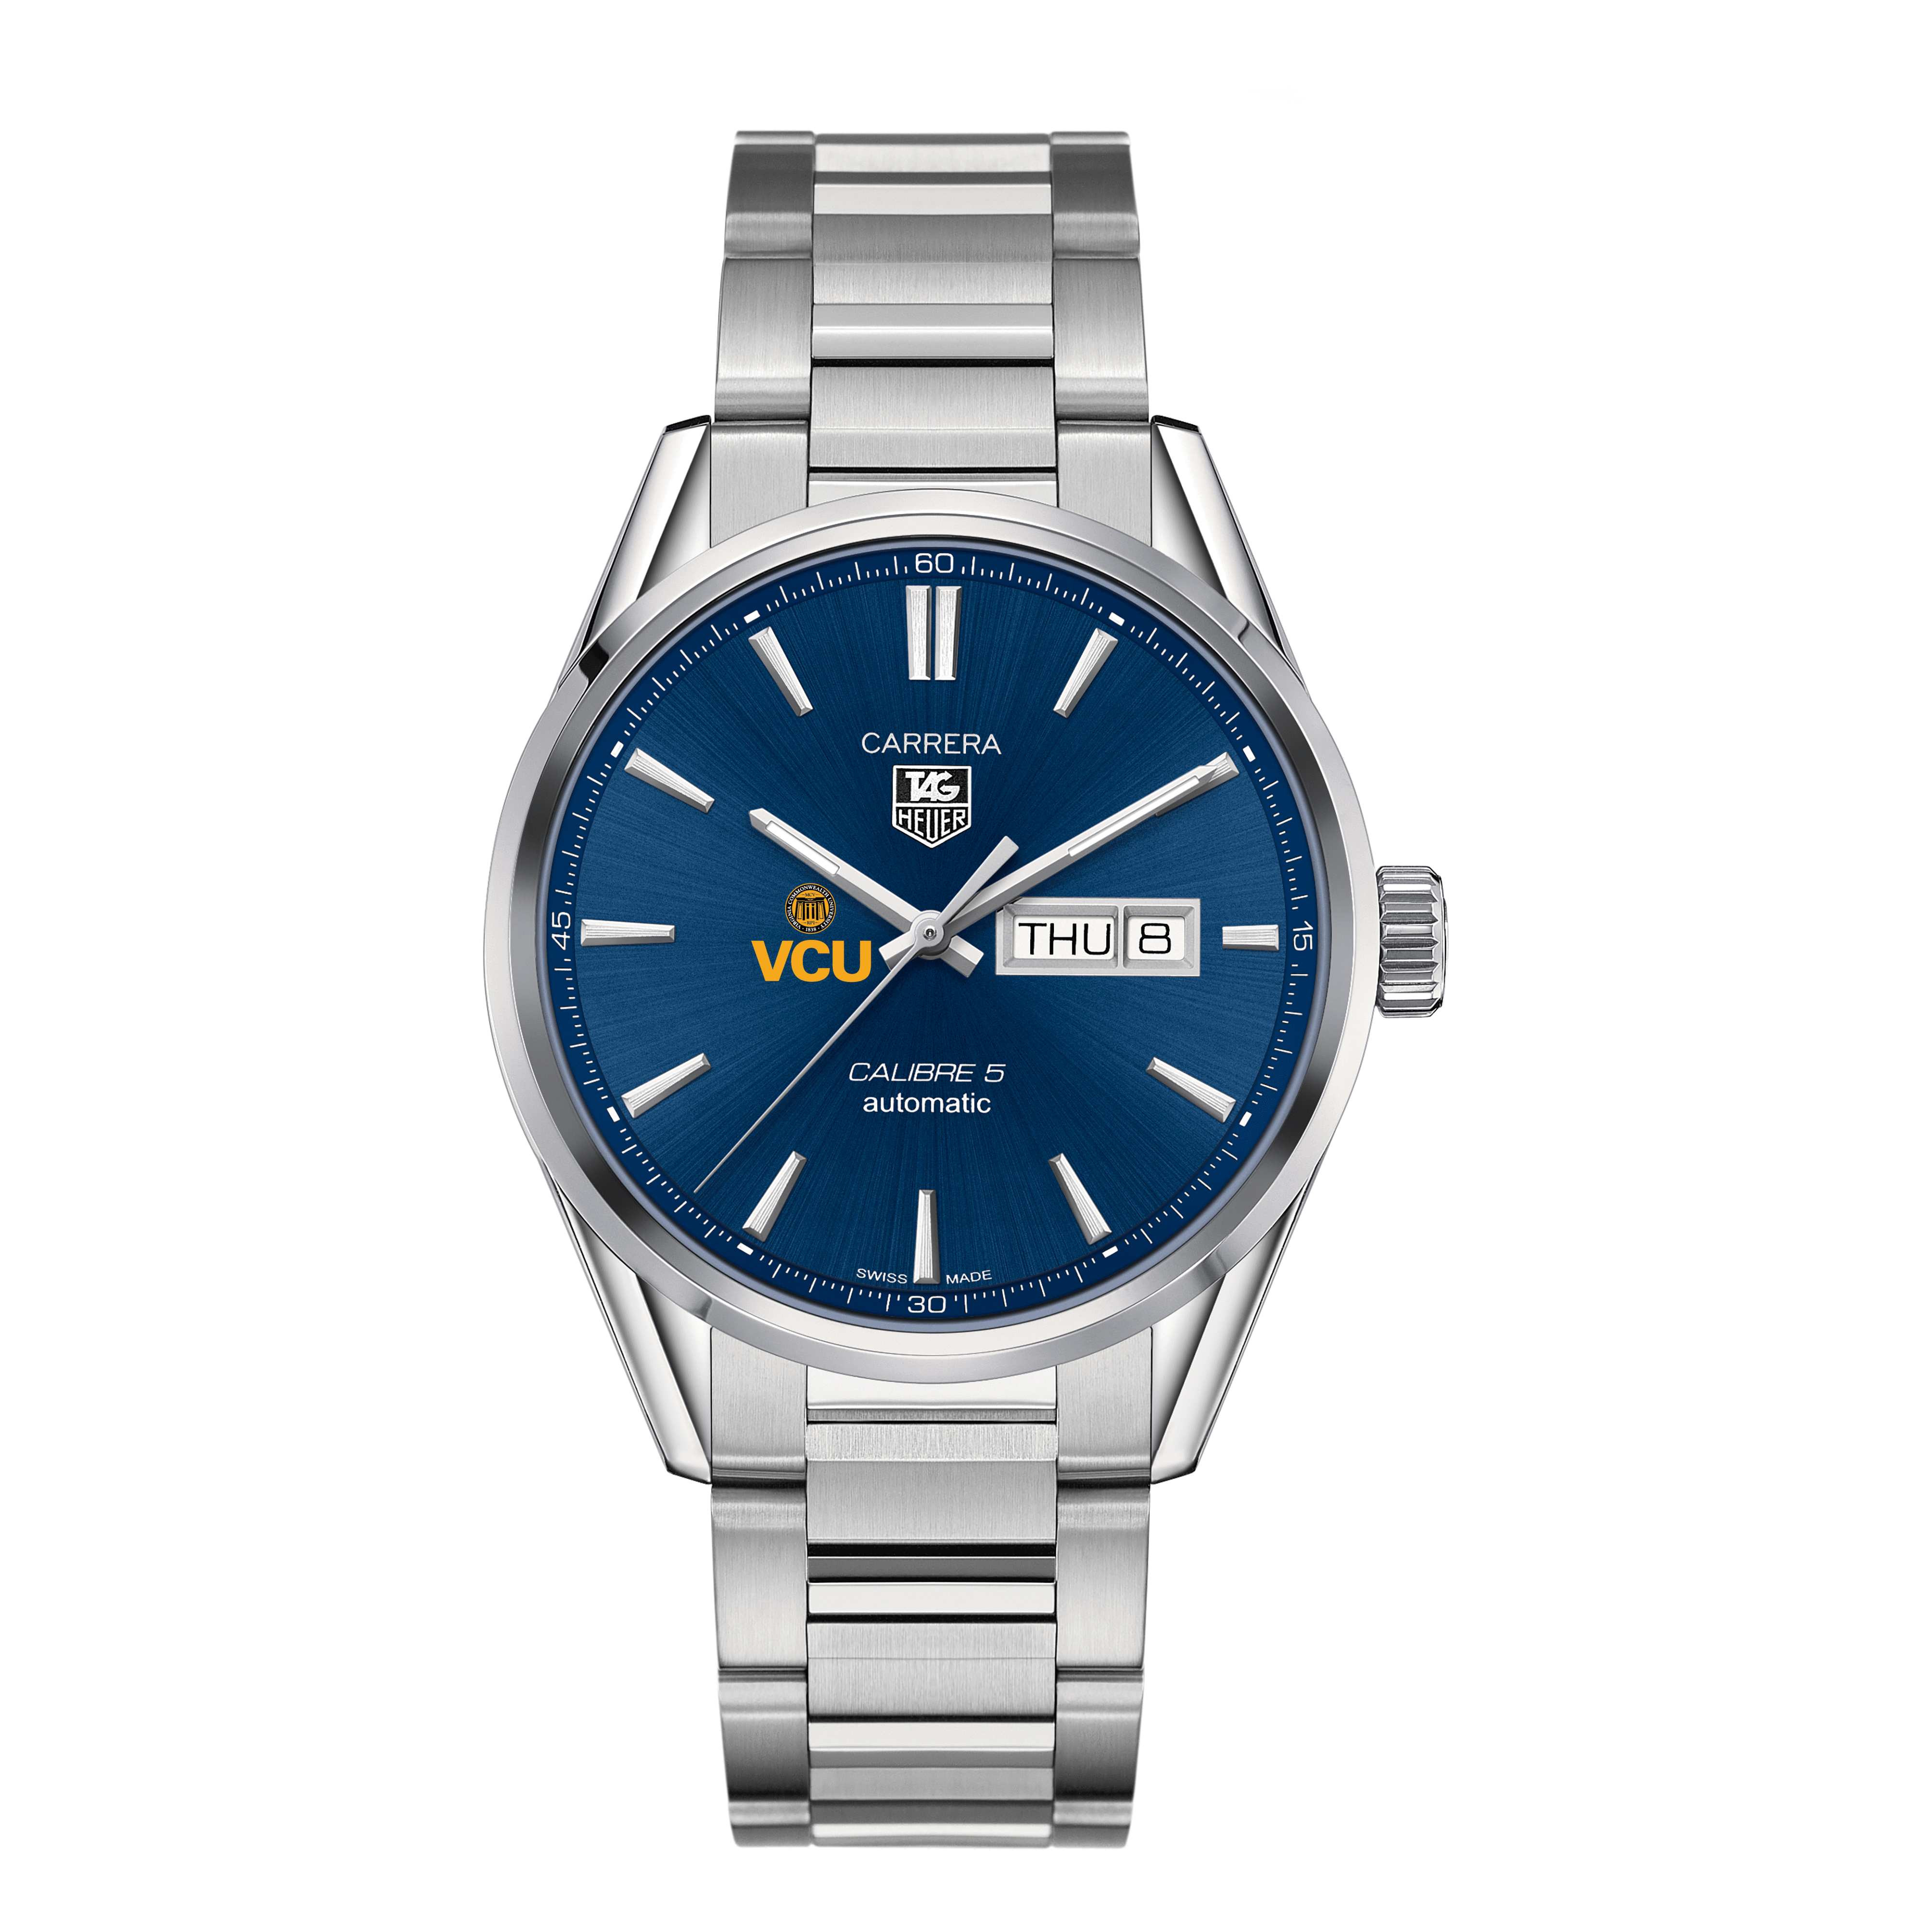 Virginia Commonwealth University Men's TAG Heuer Carrera with Day-Date - Image 2